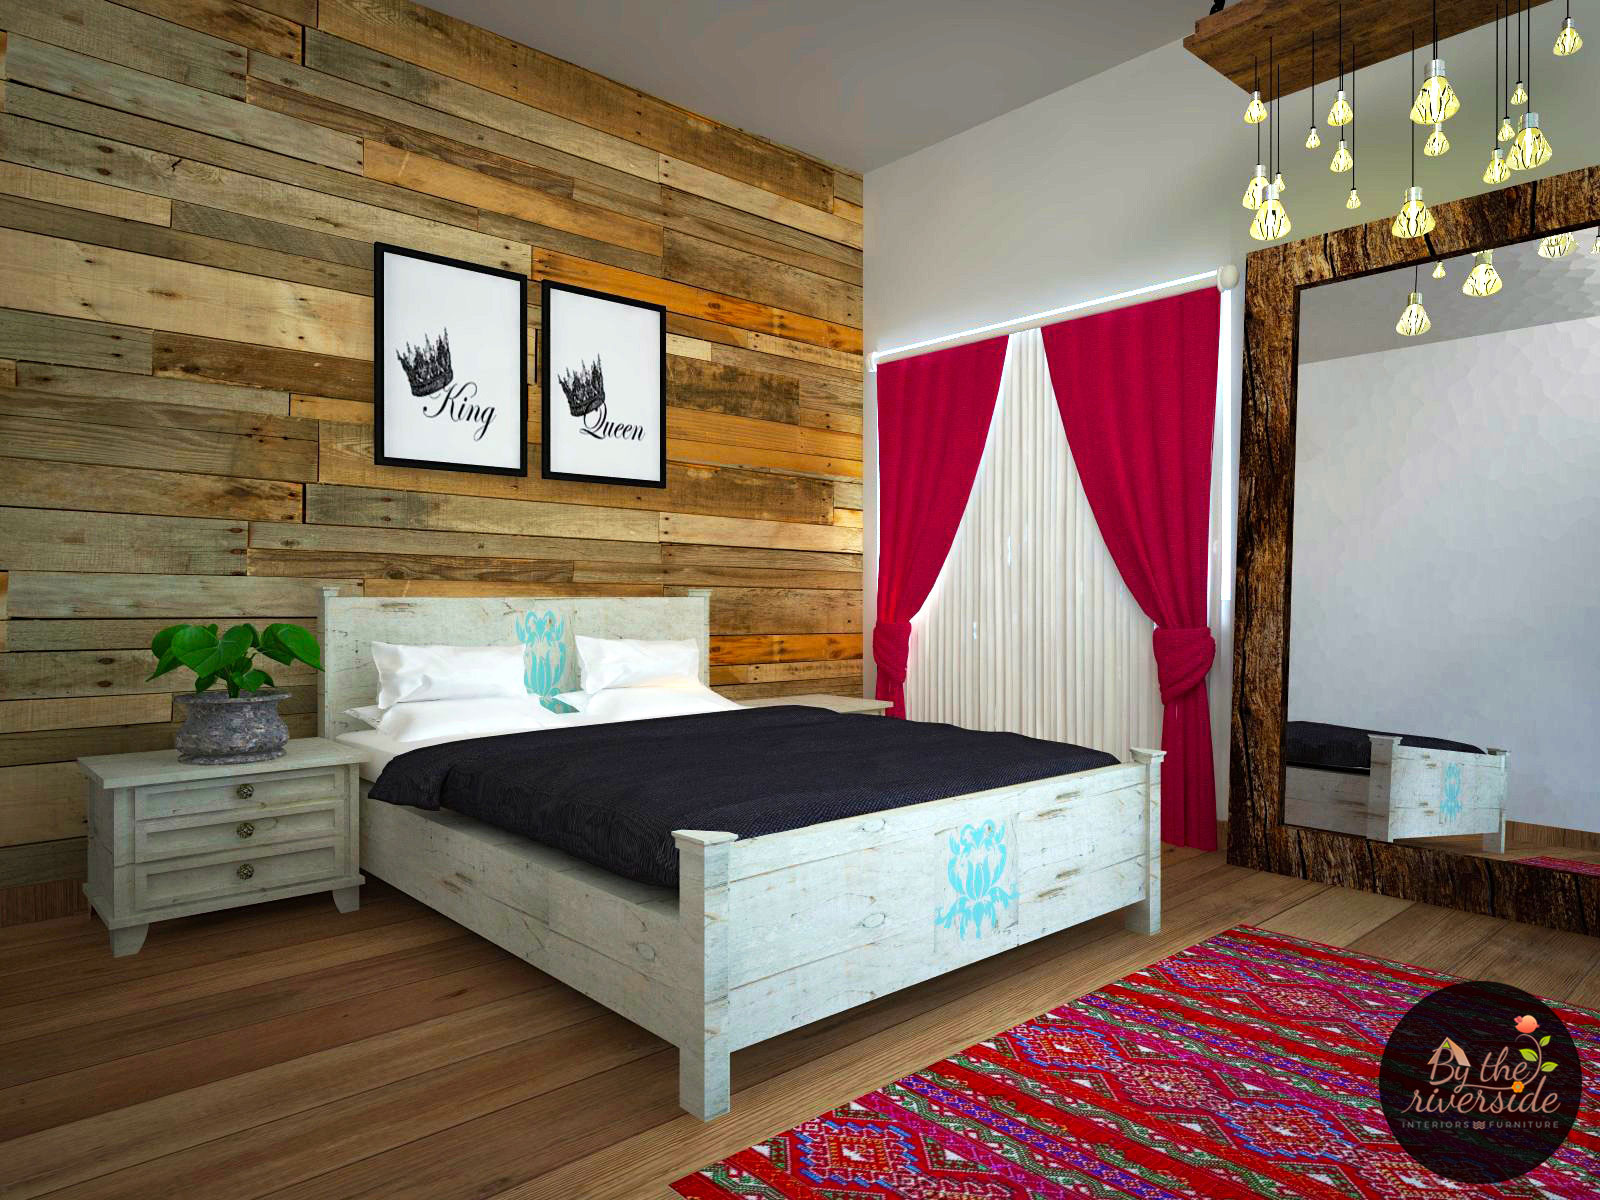 Rustic bedroom interiors